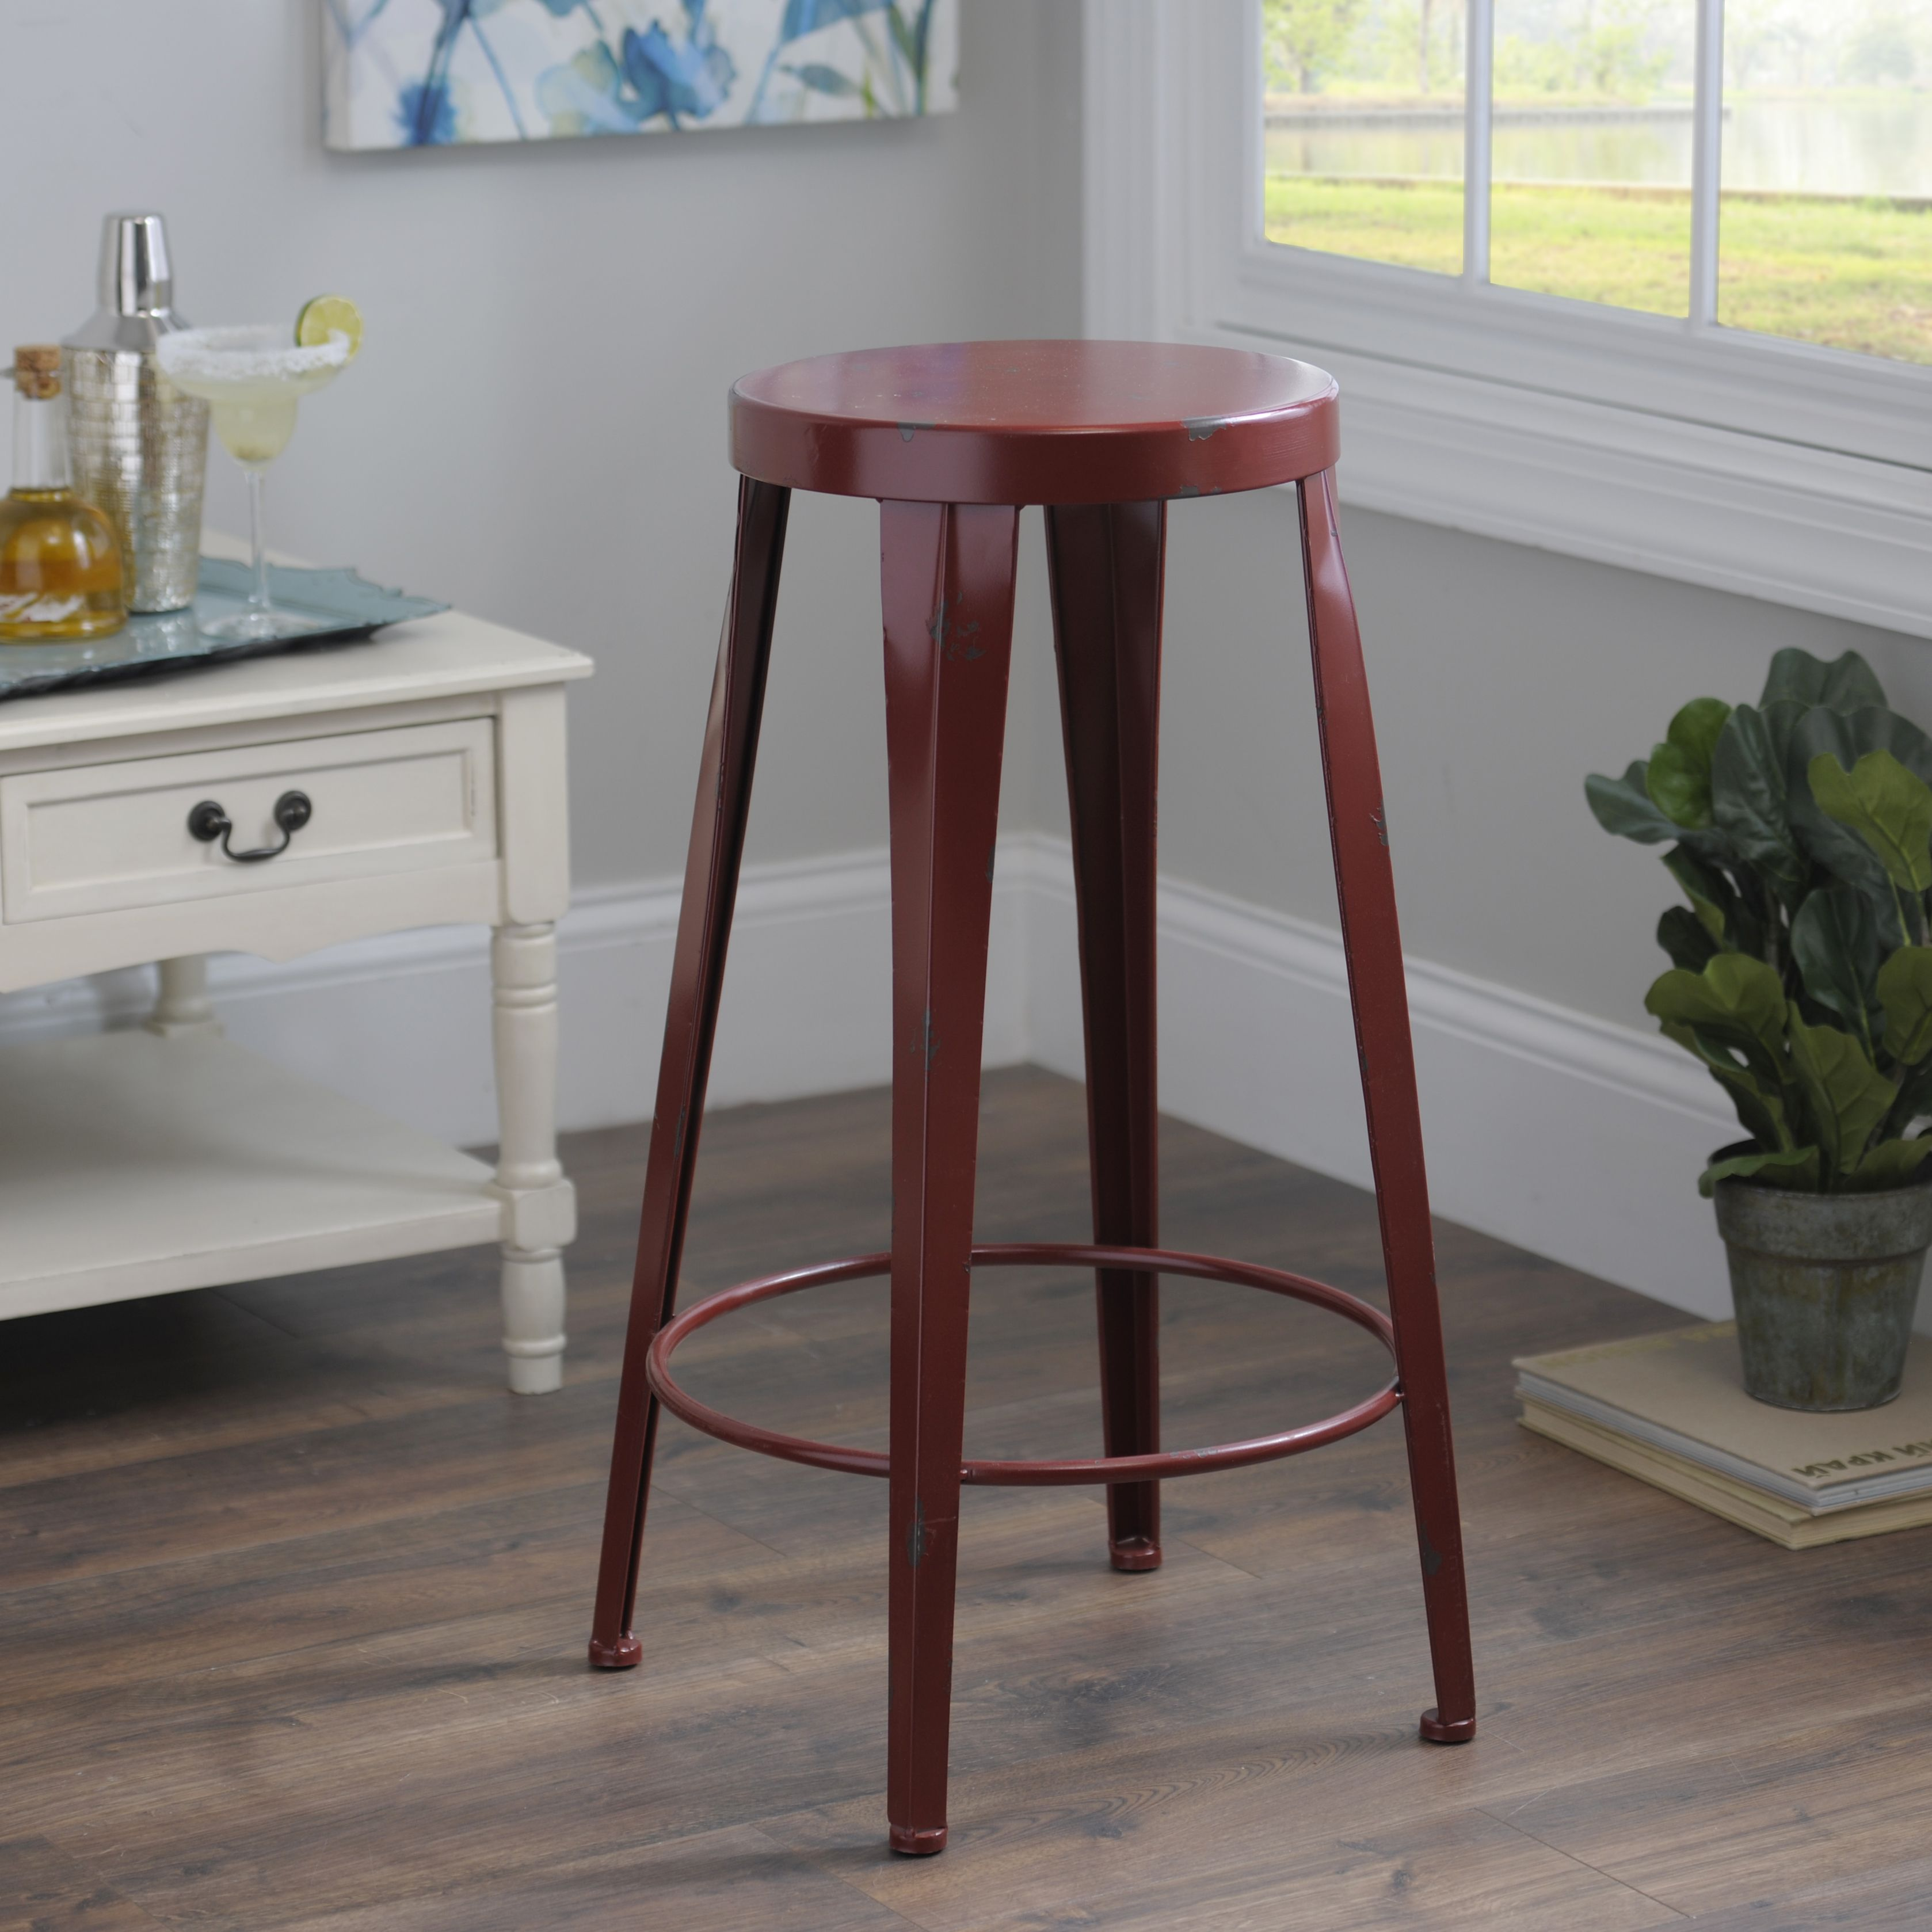 complete your bar with a modern red metal bar stool it's